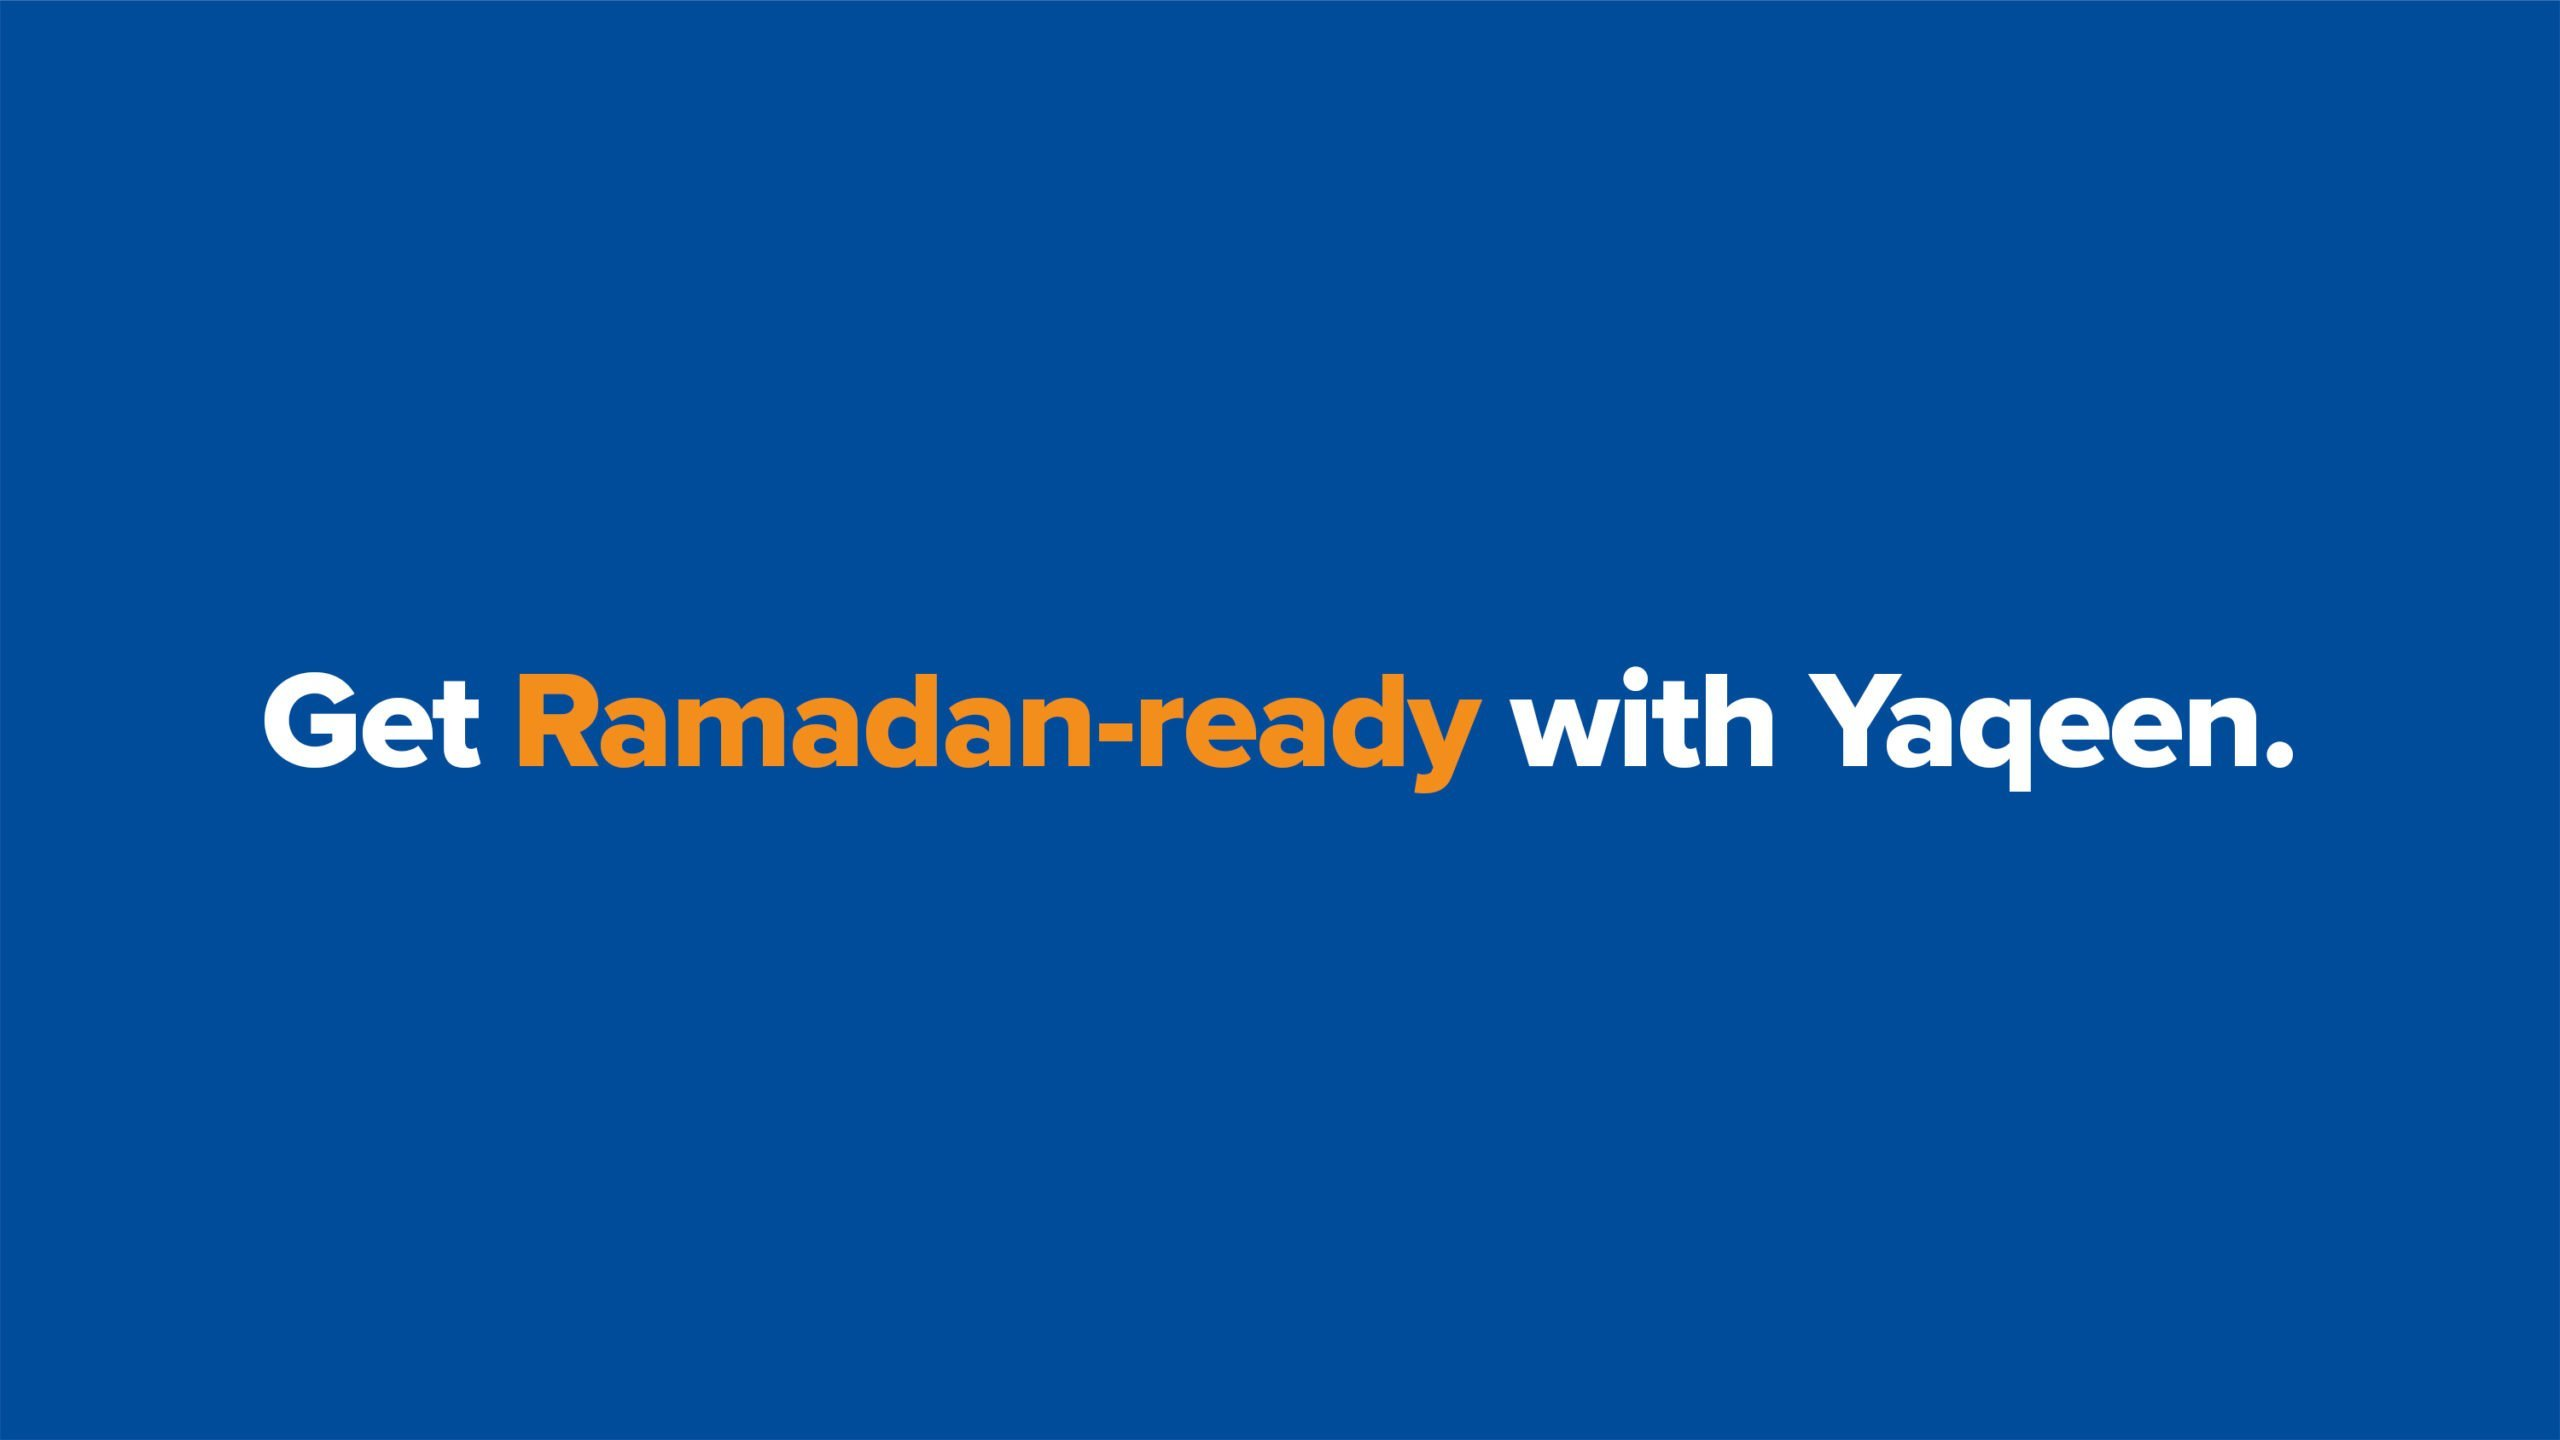 Get Ready for Ramadan with Yaqeen!